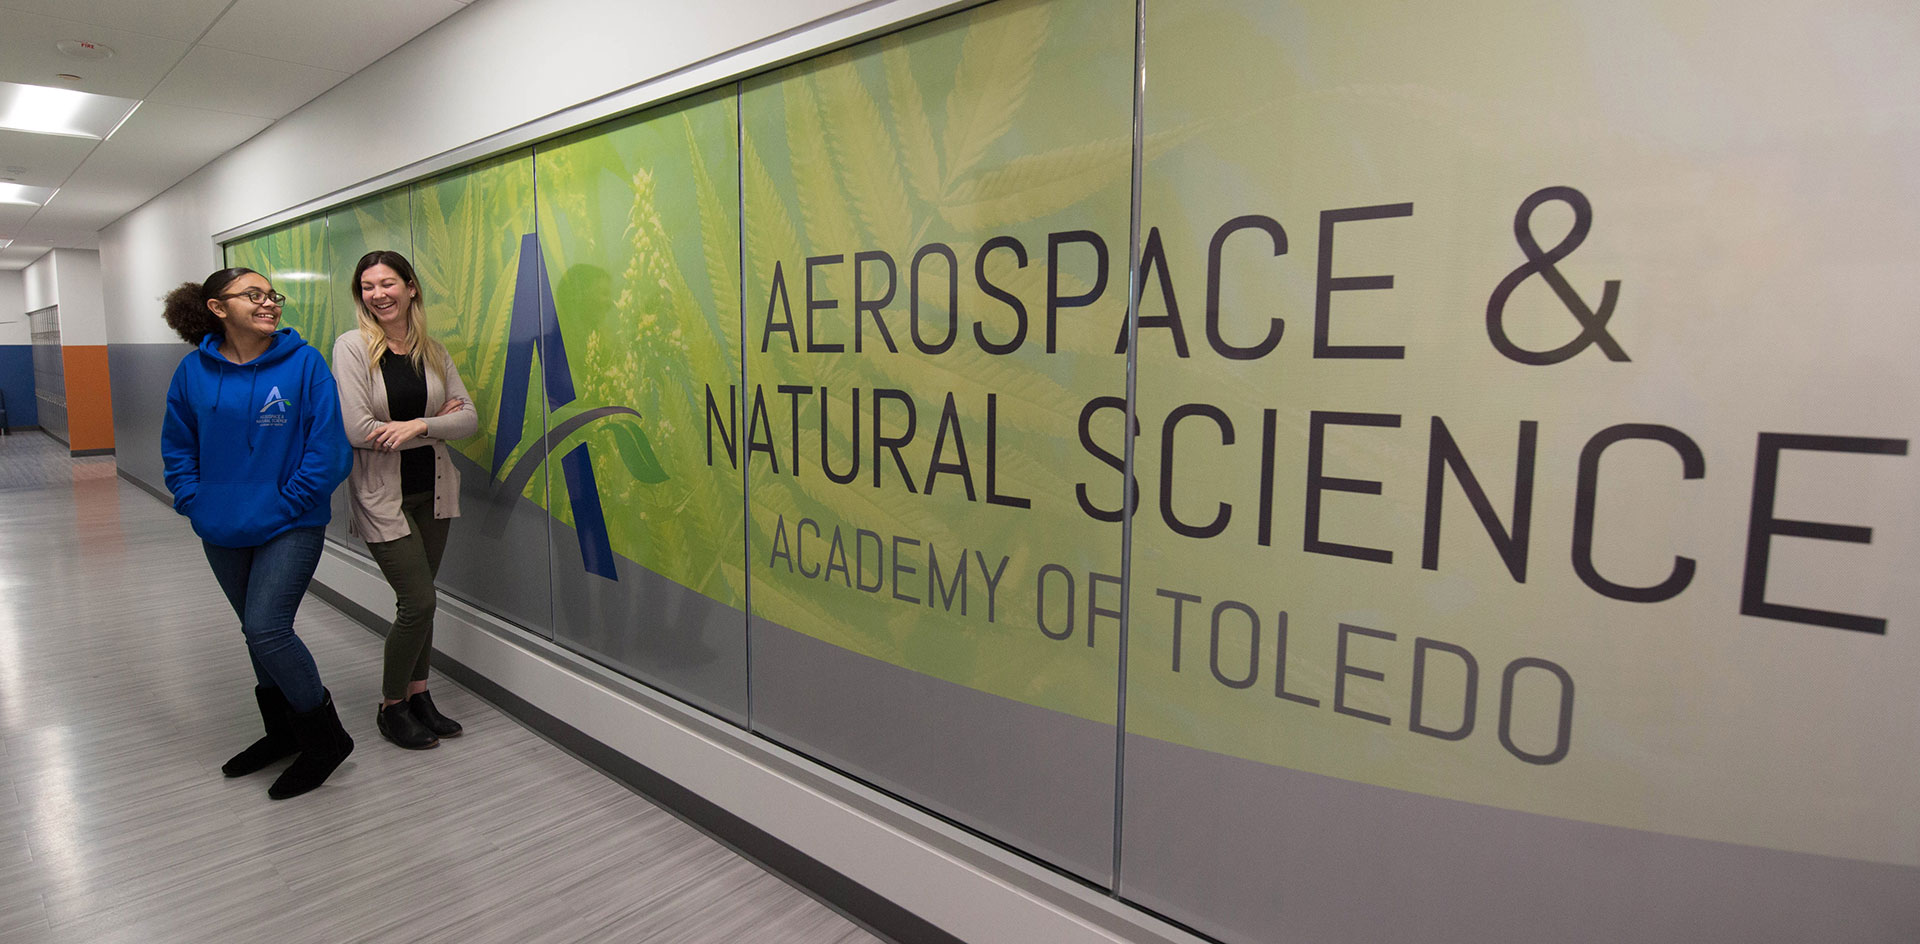 Aerospace & Natural Science Academy of Toledo graphic wall